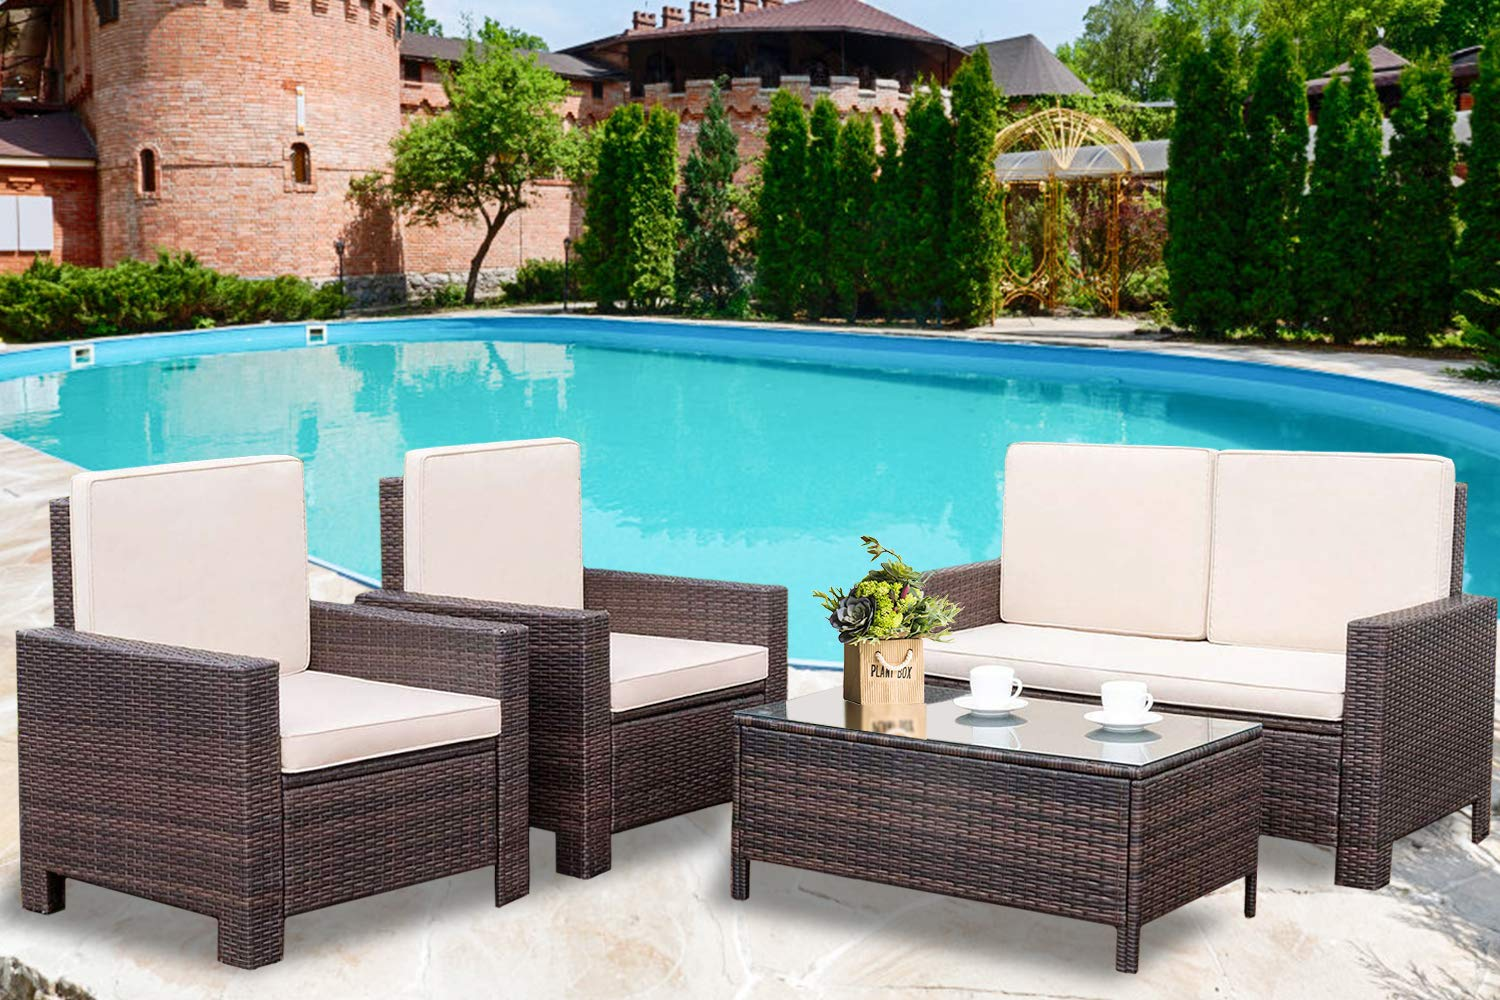 Amazon.com  Patio Furniture Set 4 Pieces Outdoor Wicker Sofa Rattan Chair Garden Conversation Set Bistro Sets with Coffee Table for Porch Poolside Backyard ... & Amazon.com : Patio Furniture Set 4 Pieces Outdoor Wicker Sofa Rattan ...